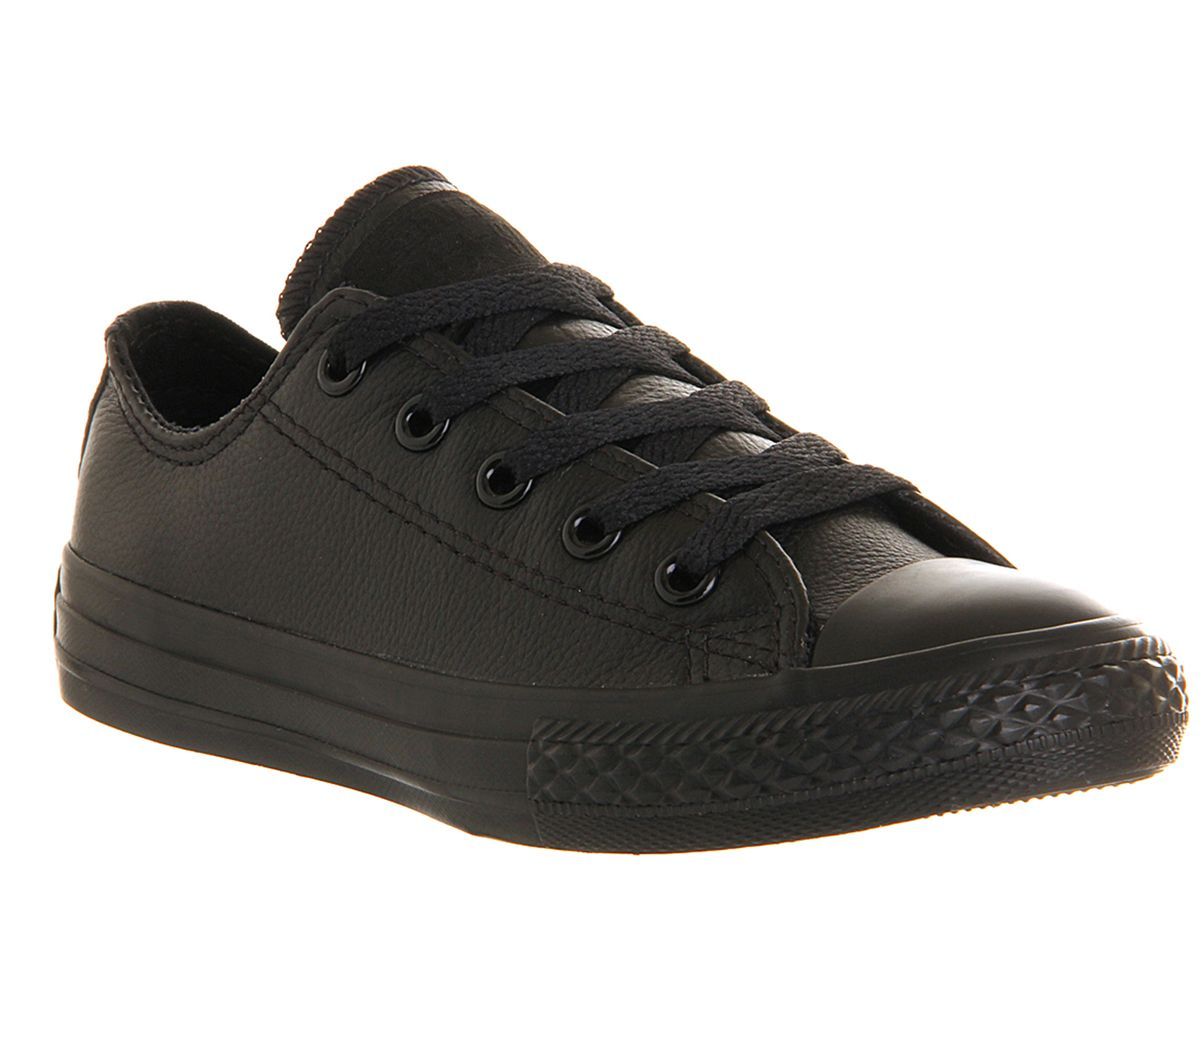 1d70ab94a65492 Converse All Star Ox Leather Kids Black Mono - Unisex